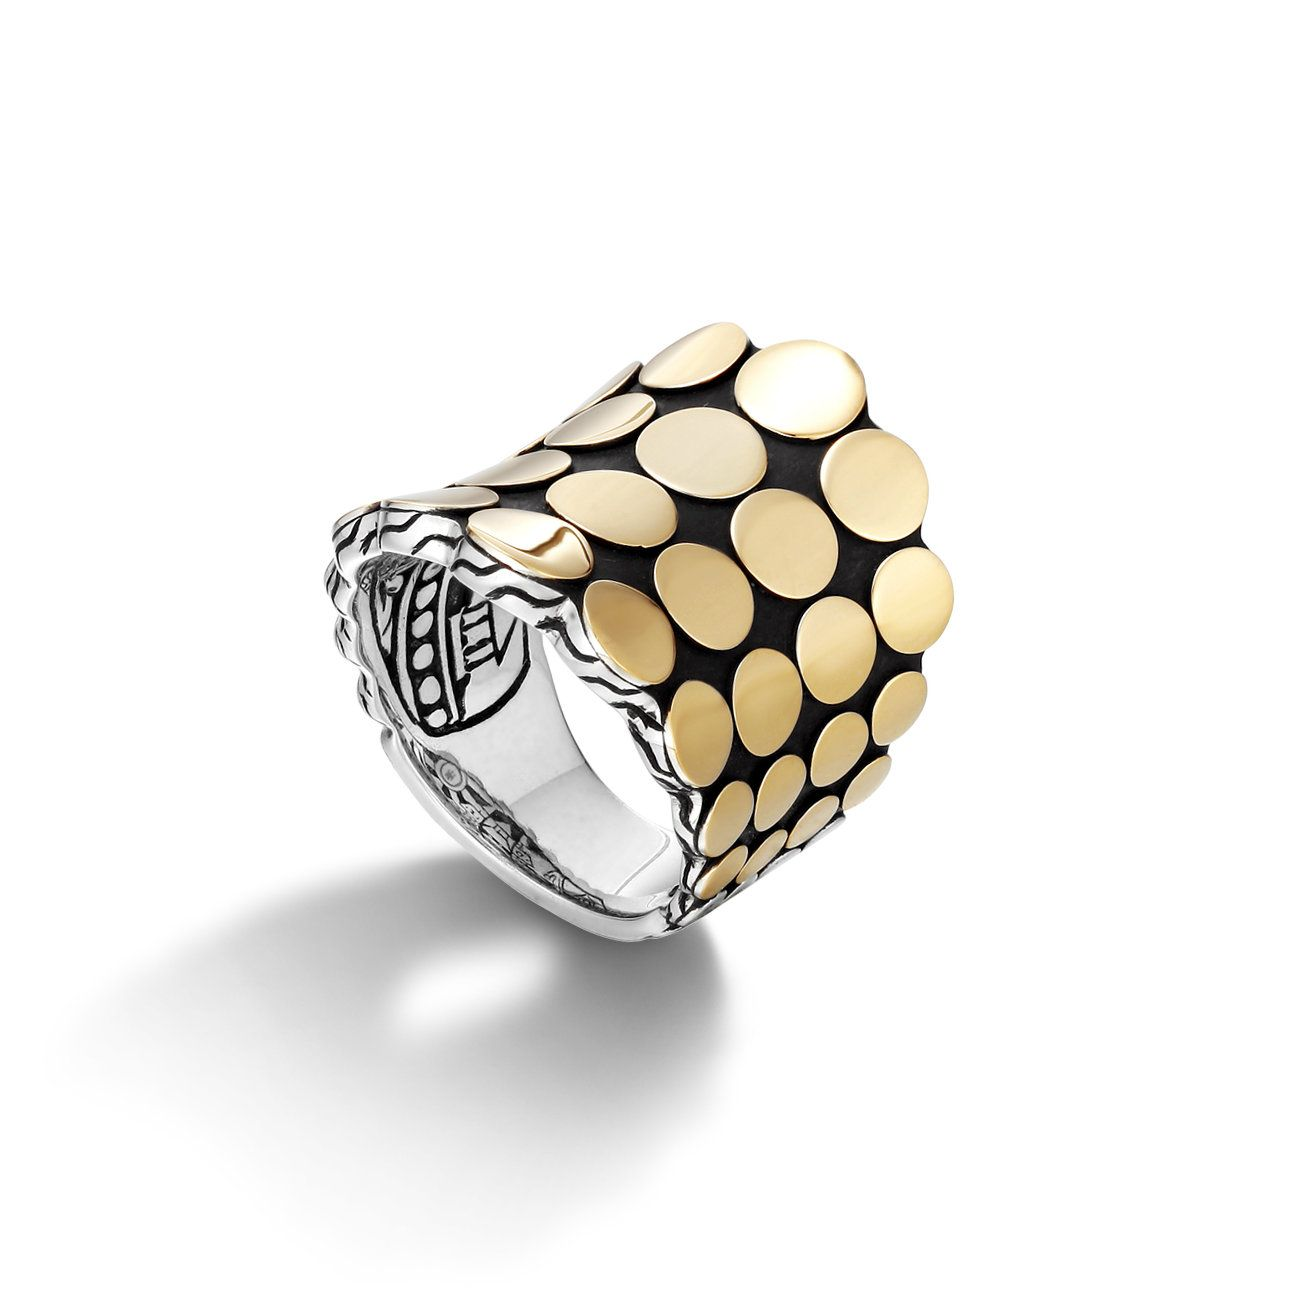 DOT COLLECTION Saddle Ring (width 23mm)   John Hardy Online Boutique